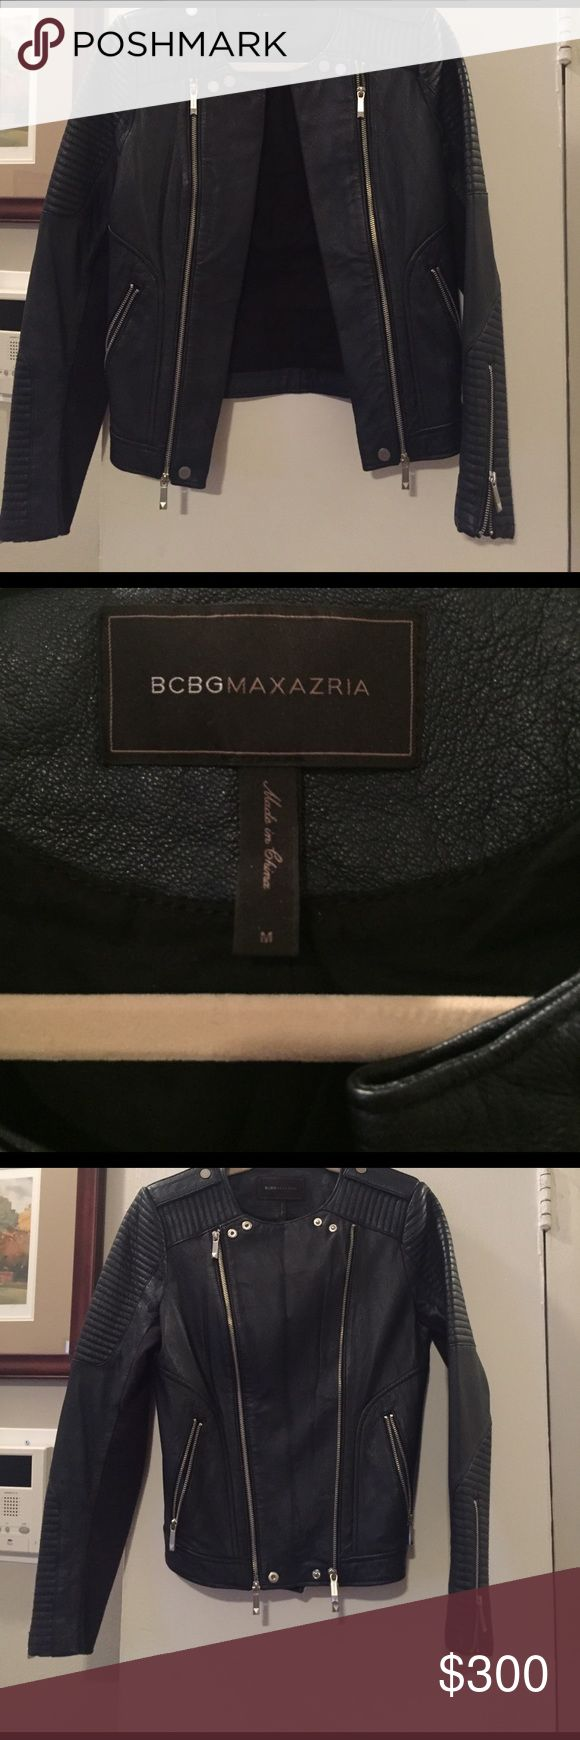 BCBG Navy Moto Leather Jacket 100% leather jacket. Navy, zippers all work great, zippers open up to extend across. See pics. BCBG Jackets & Coats